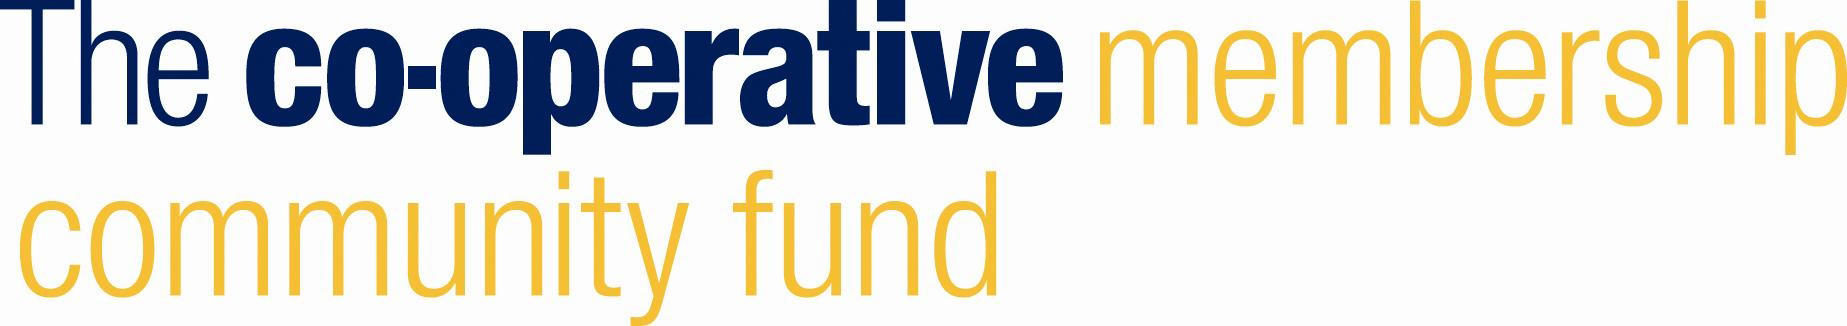 Co-operative Membership Community Fund Logo